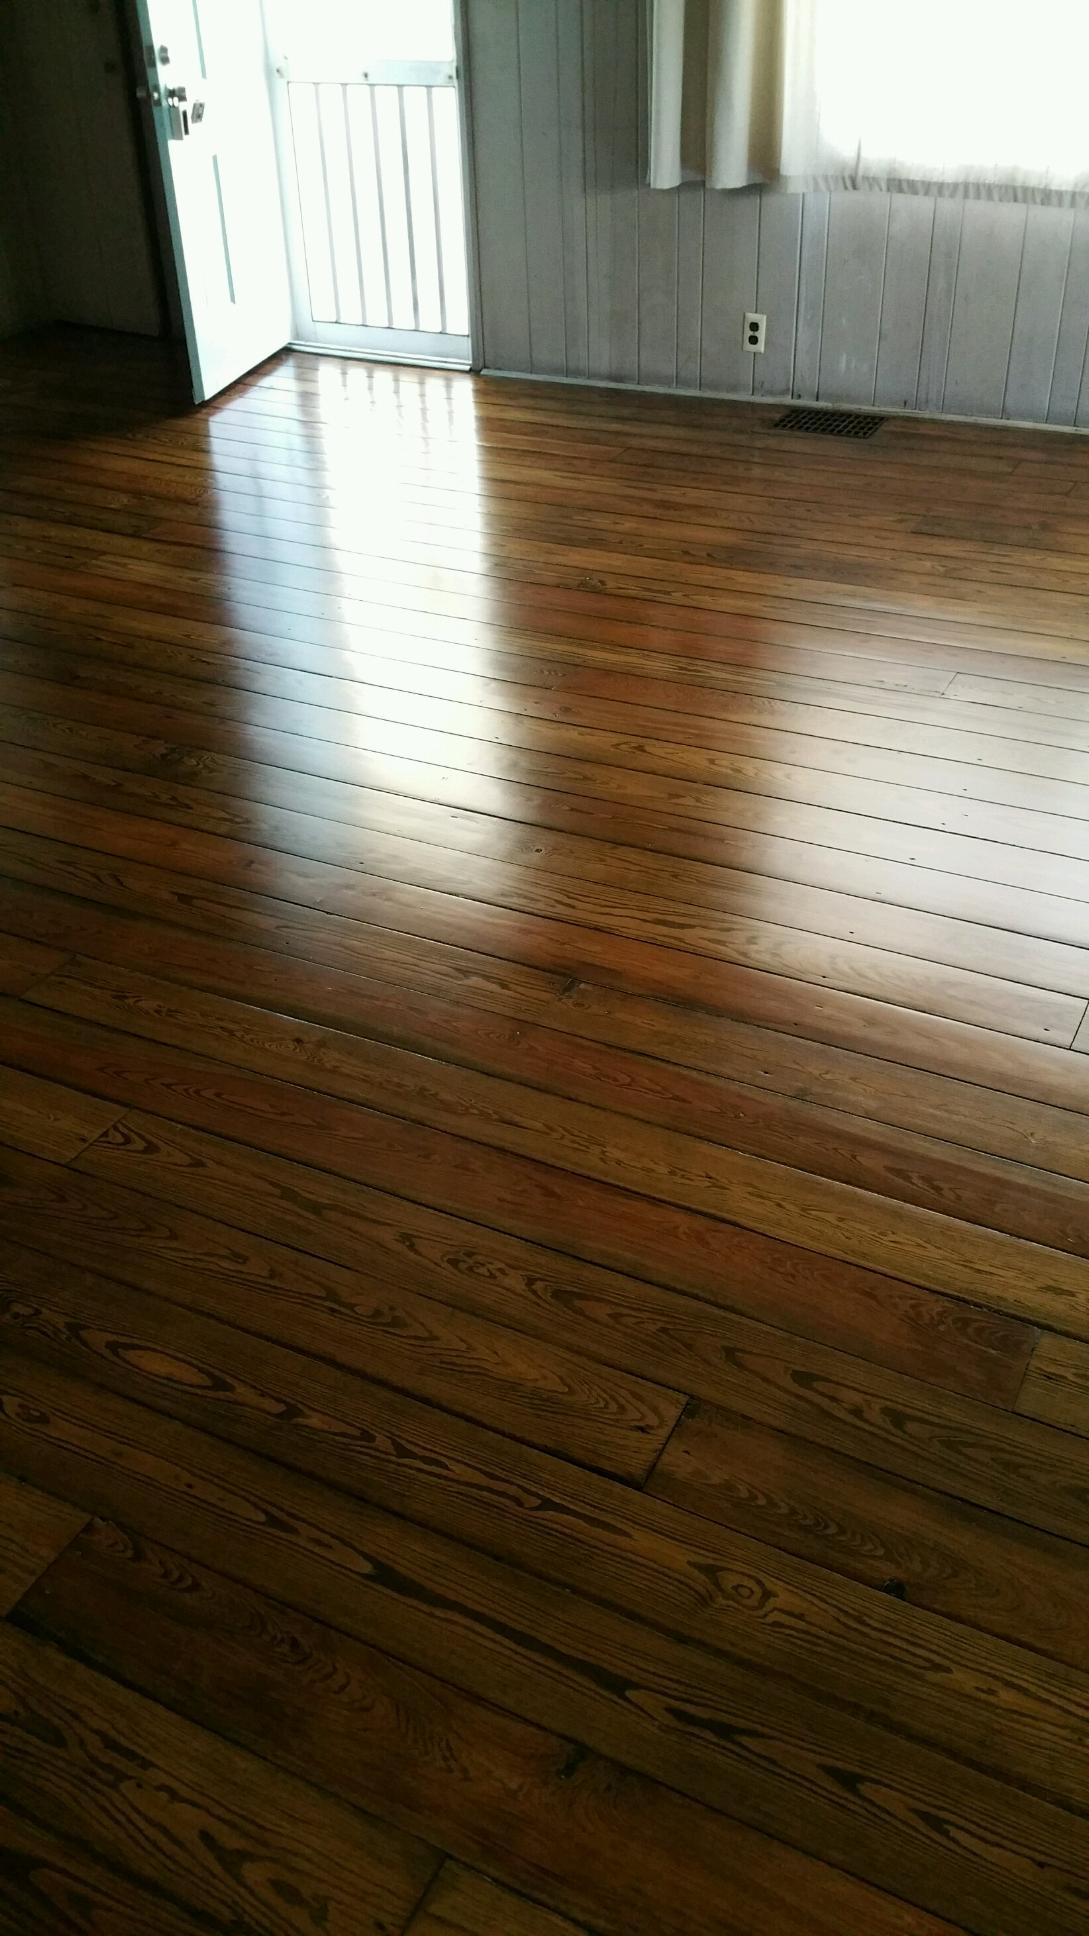 Beach House Flooring Repair